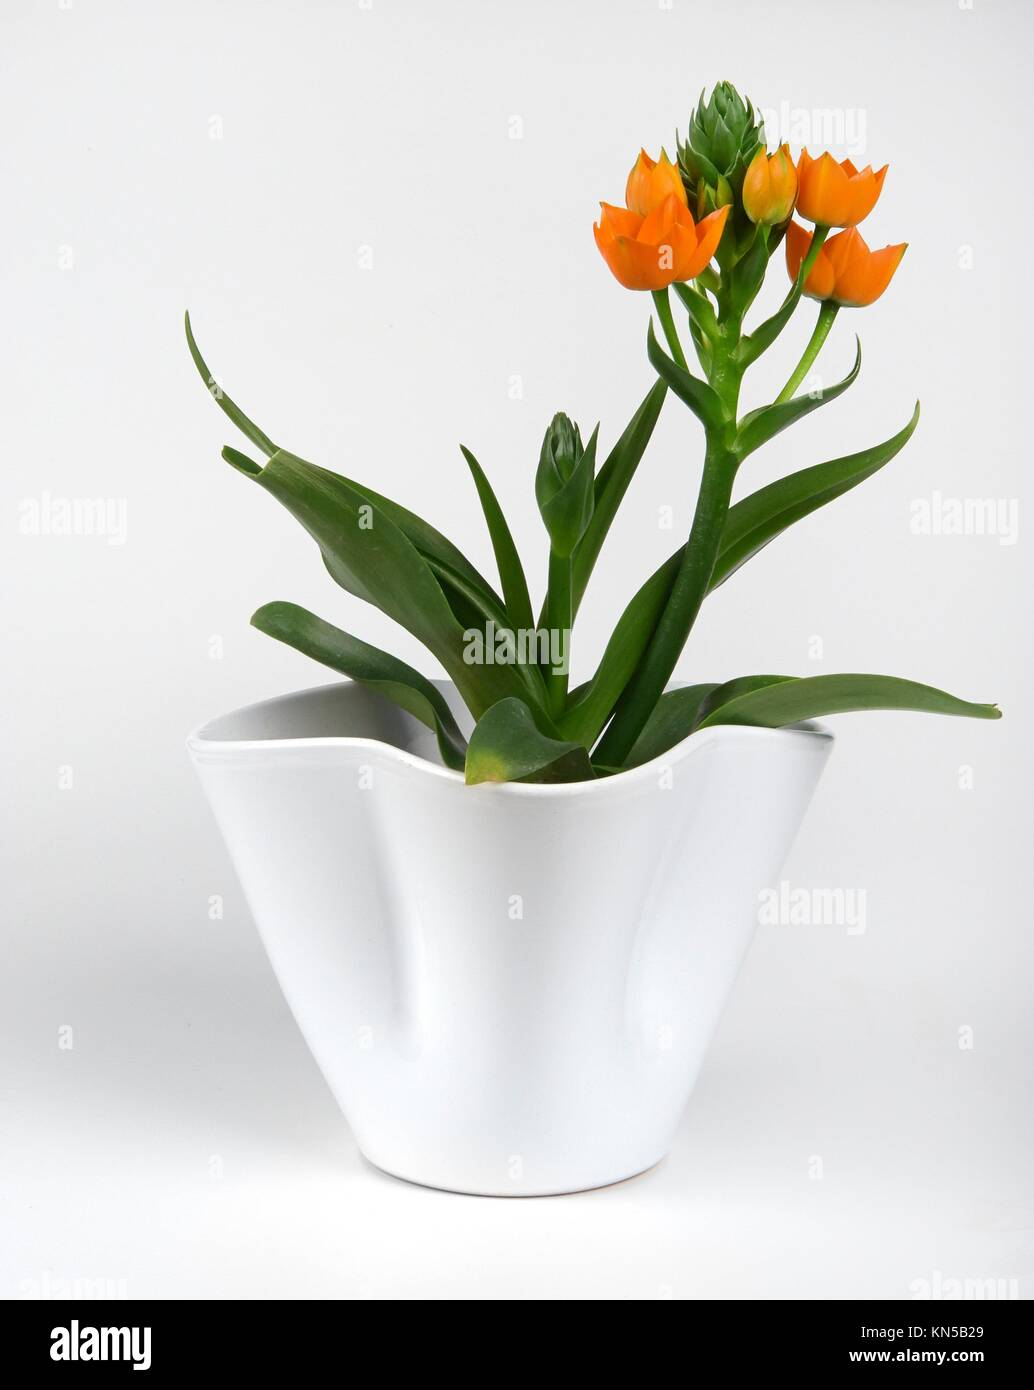 a seedling with some flowers of Ornithogalum Dubium on white background. - Stock Image